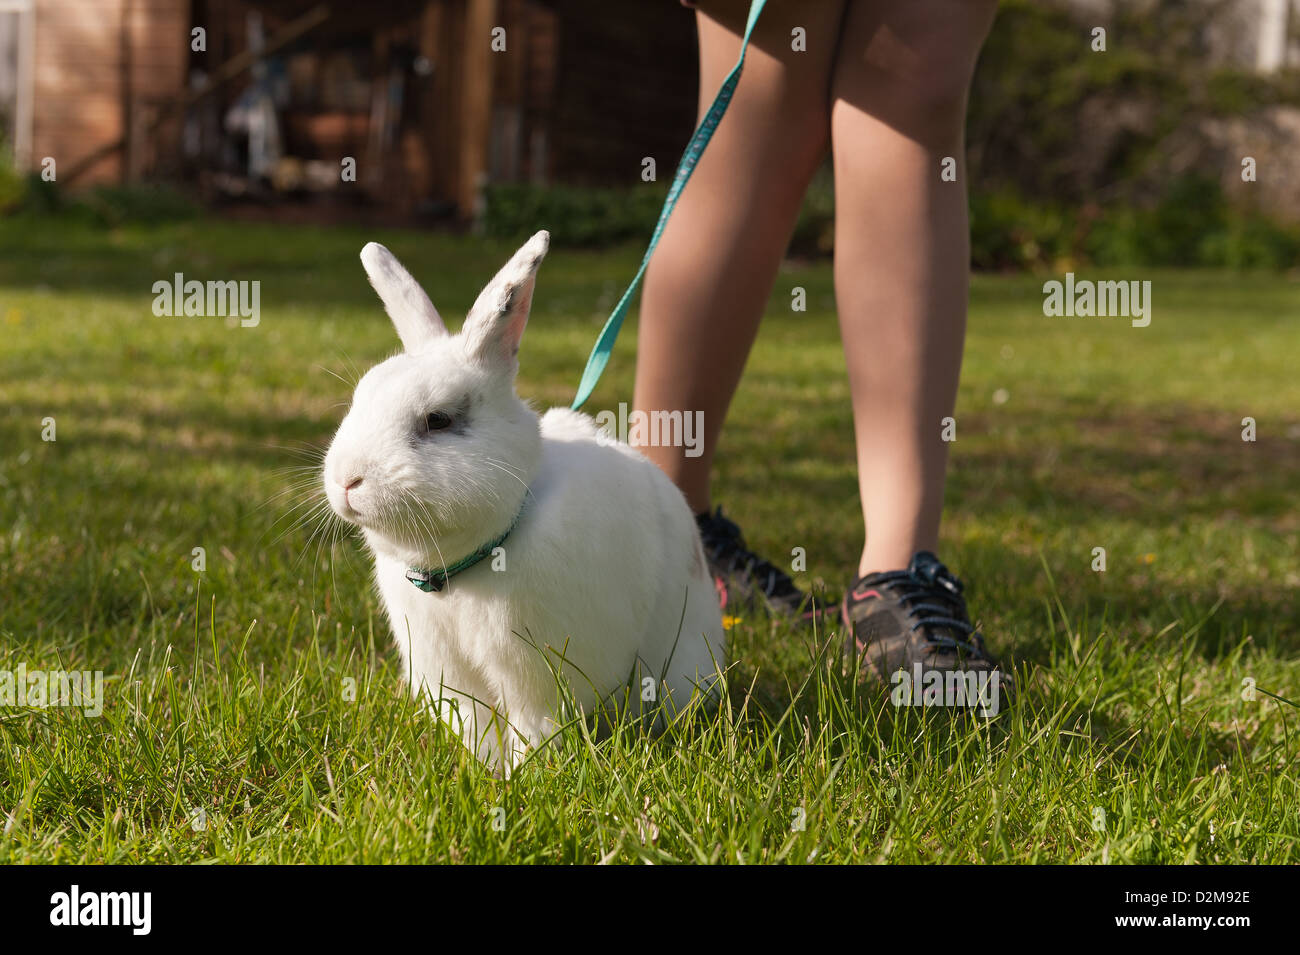 Teenager girl walking an English butterfly white rabbit on a lead on a lawn with daisies with harness - Stock Image